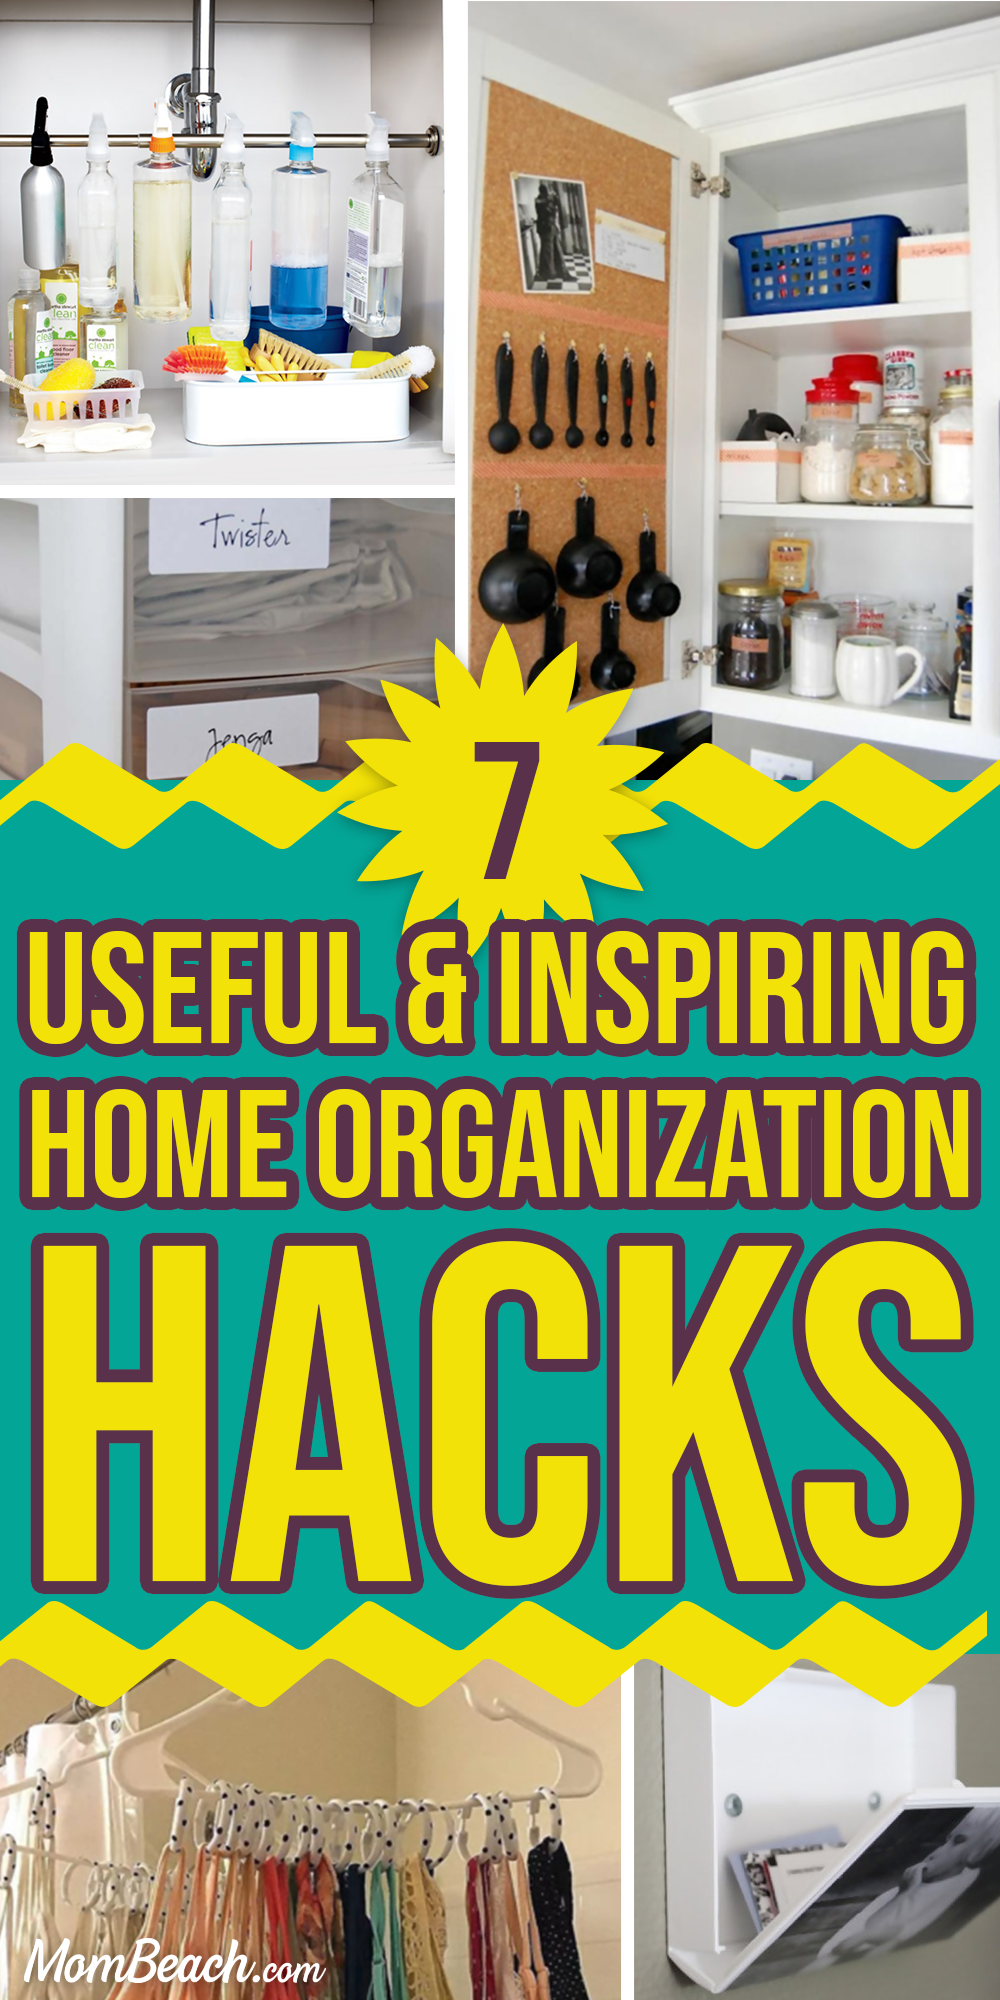 You won't believe how useful and inspiring these 7 home organization hacks are. Get organized and decluttered right away by utilizing these amazing ideas. Whether you are wanting to DIY or on a budget, you will find these ideas to be super helpful. Organize your closet, bathroom, bedroom, apartment and more with these clever hacks. #homeorganization #homeorganizationhacks #homeorganizationideas #homeorganizationdeclutter #homeorganizationdiy #homeorganizationonabudget